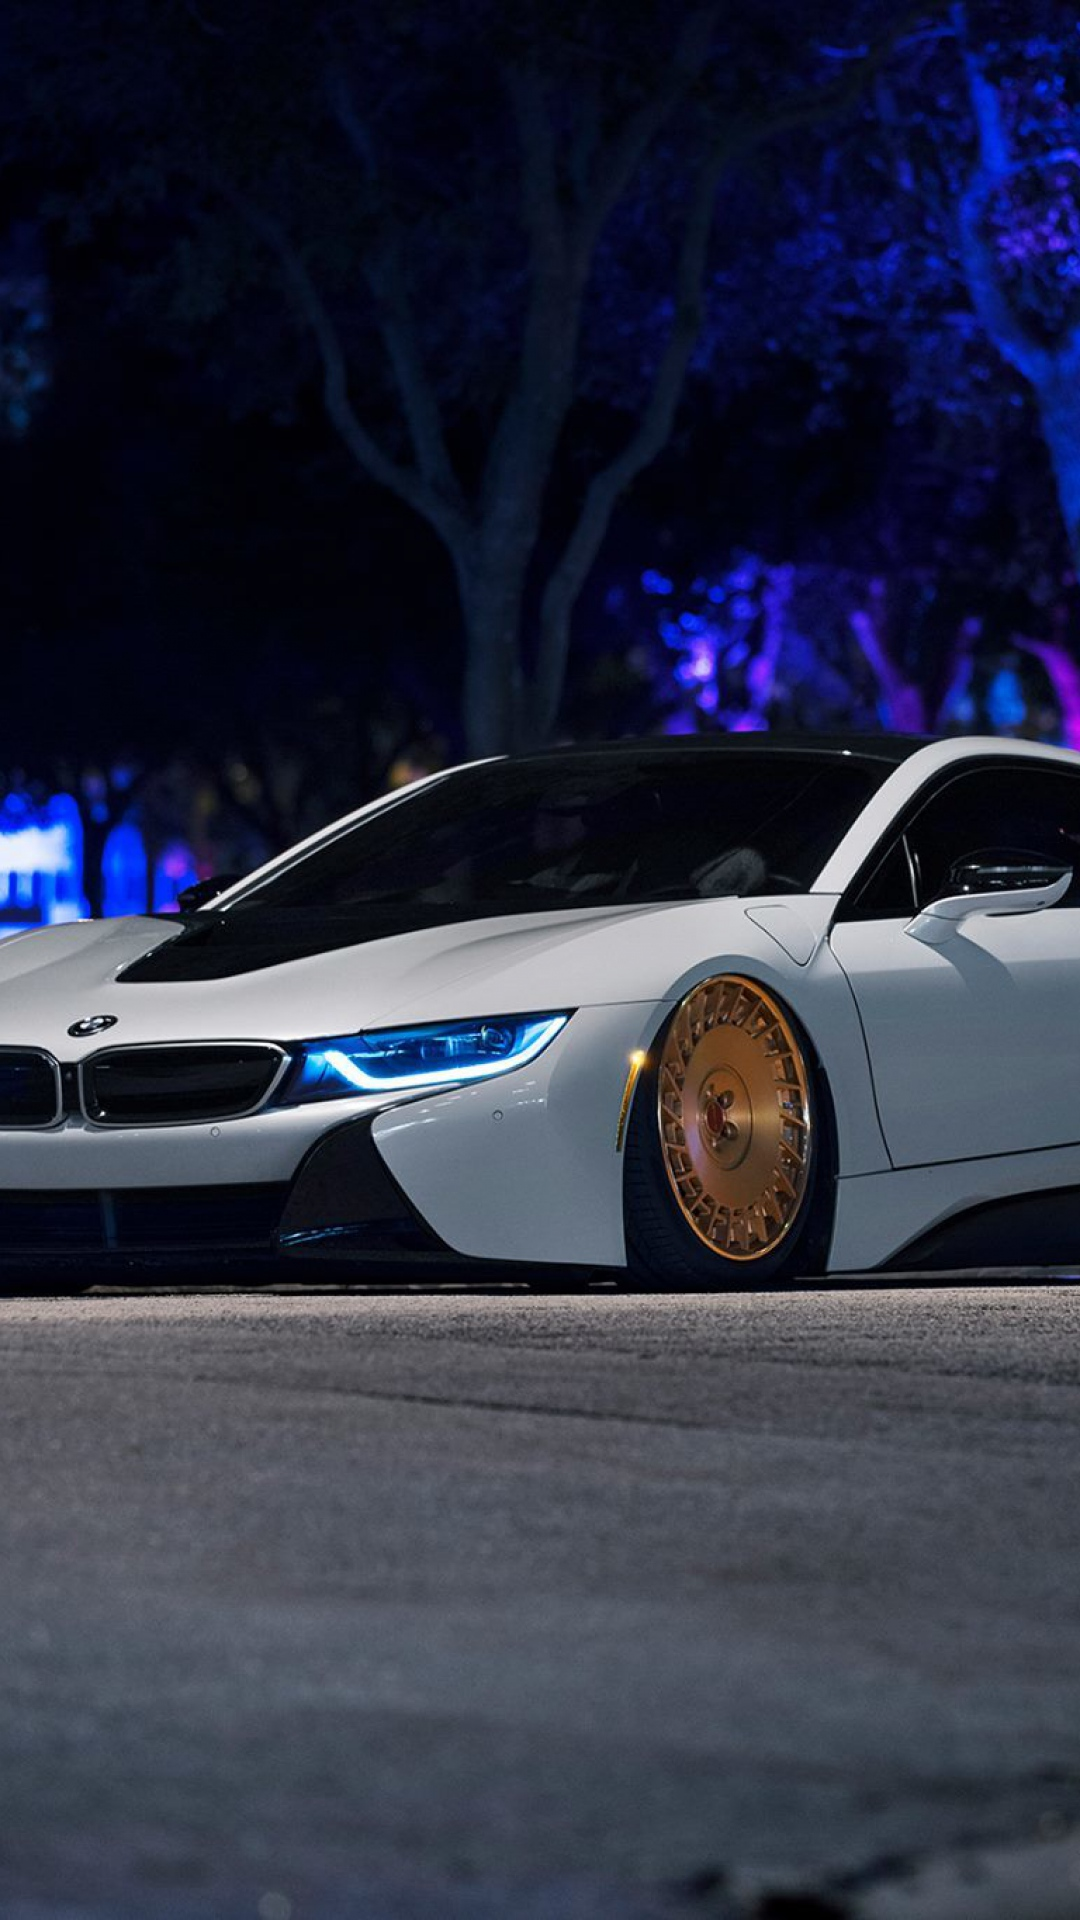 Bmw I8 Wallpapers For Iphone 7 Iphoneplus Iphoneplus Bmw I8 Cool Backgrounds 1080x1920 Download Hd Wallpaper Wallpapertip